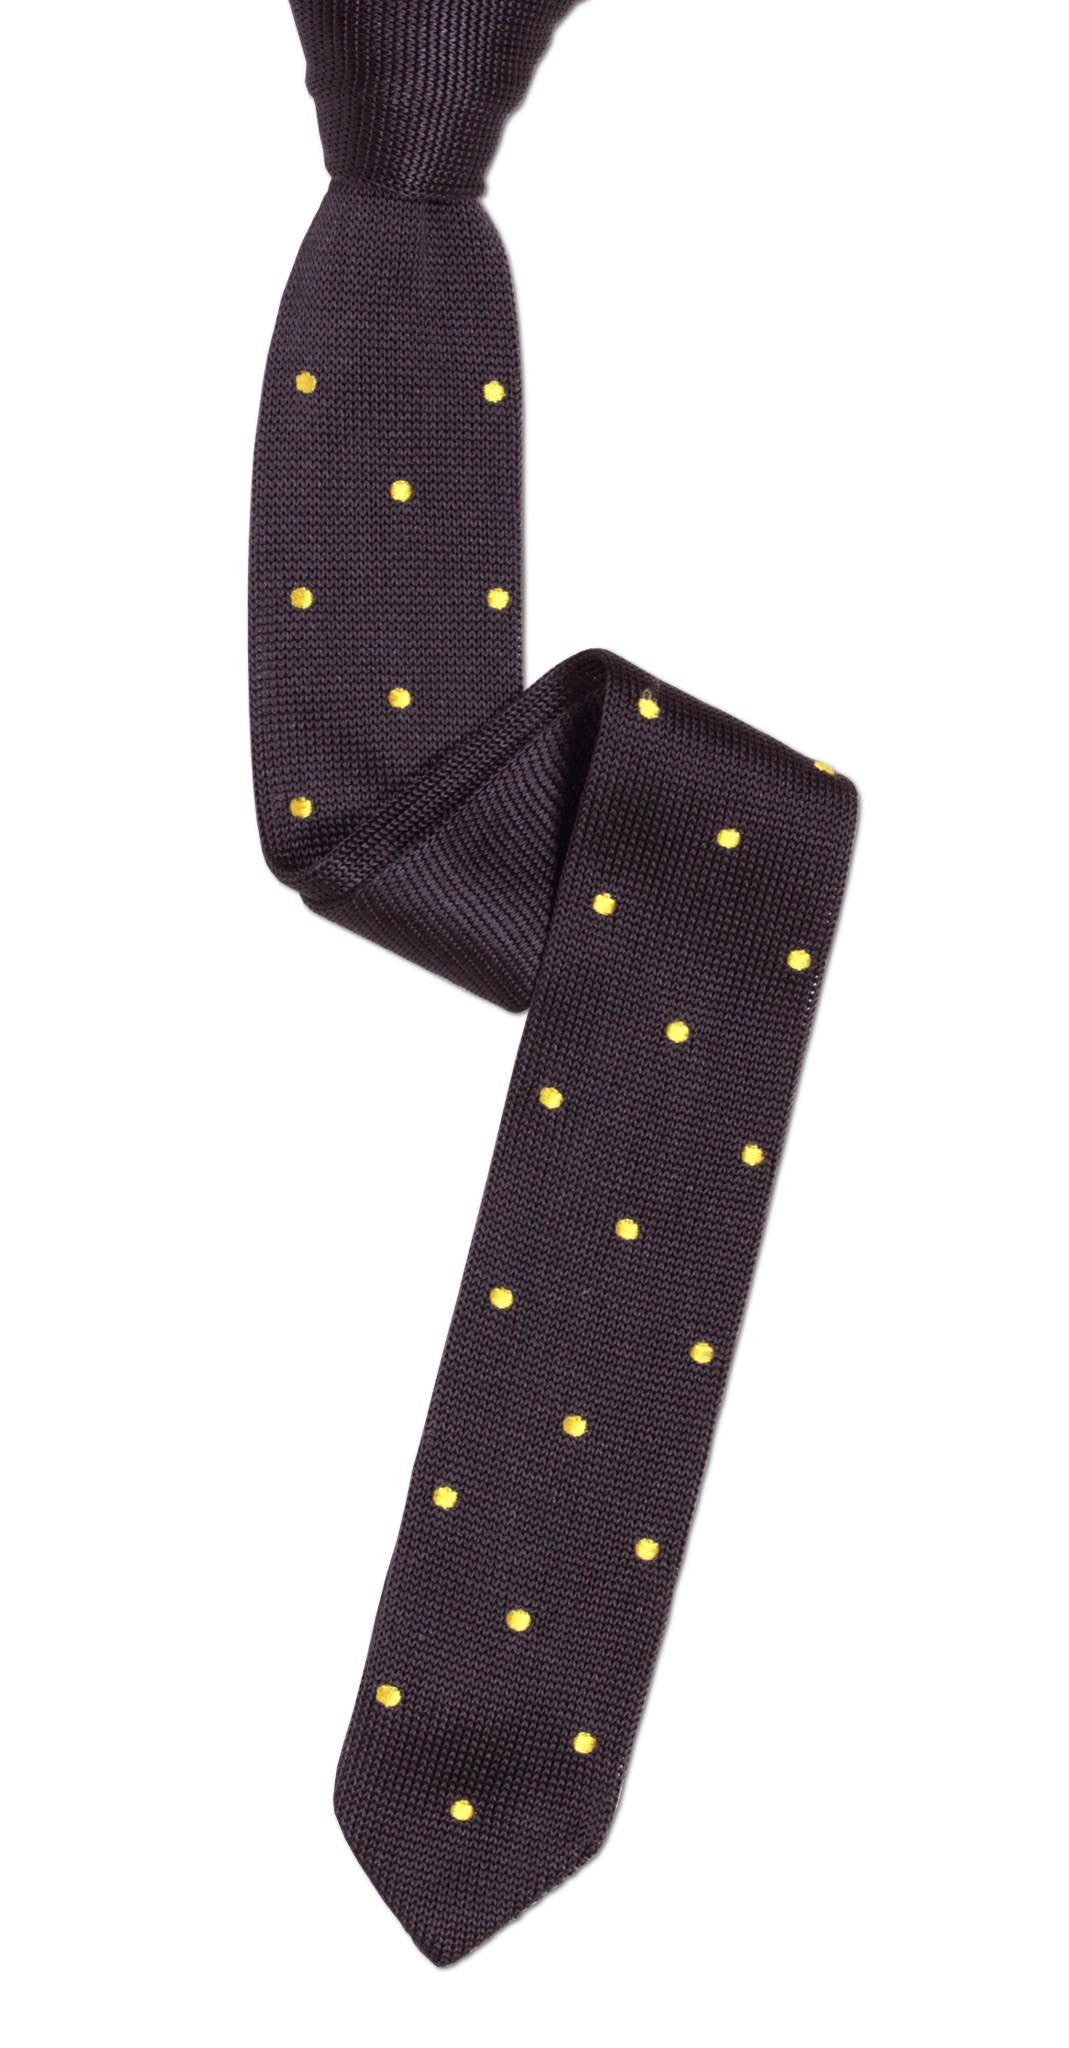 Pointed-Tip Grey Skinny Knit Tie with Yellow Pin Dots | Soxfords